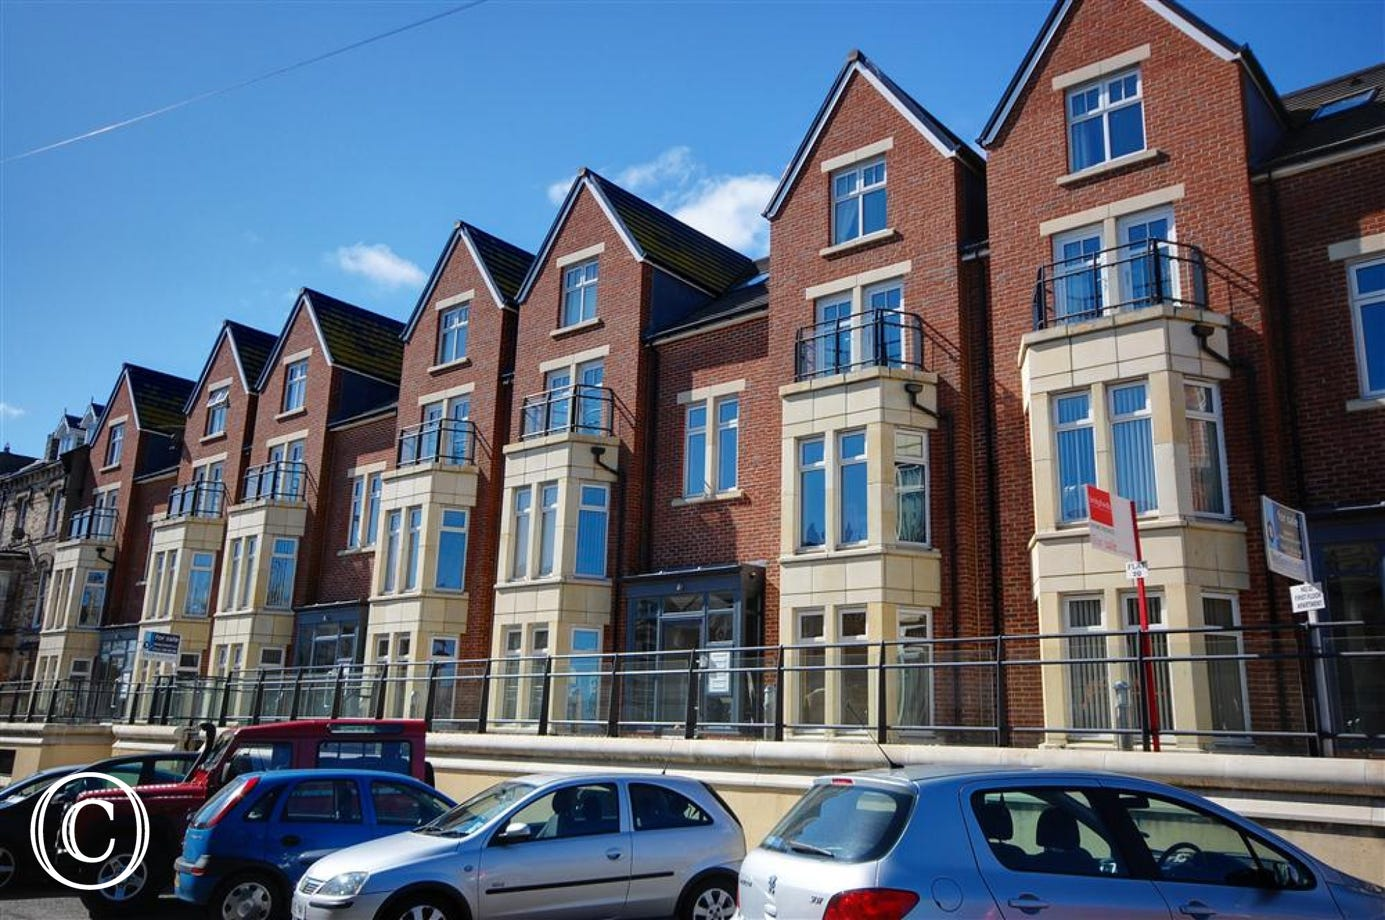 Modern, second floor apartment with great views towards the Abbey and in an excellent location to explore Whitby.